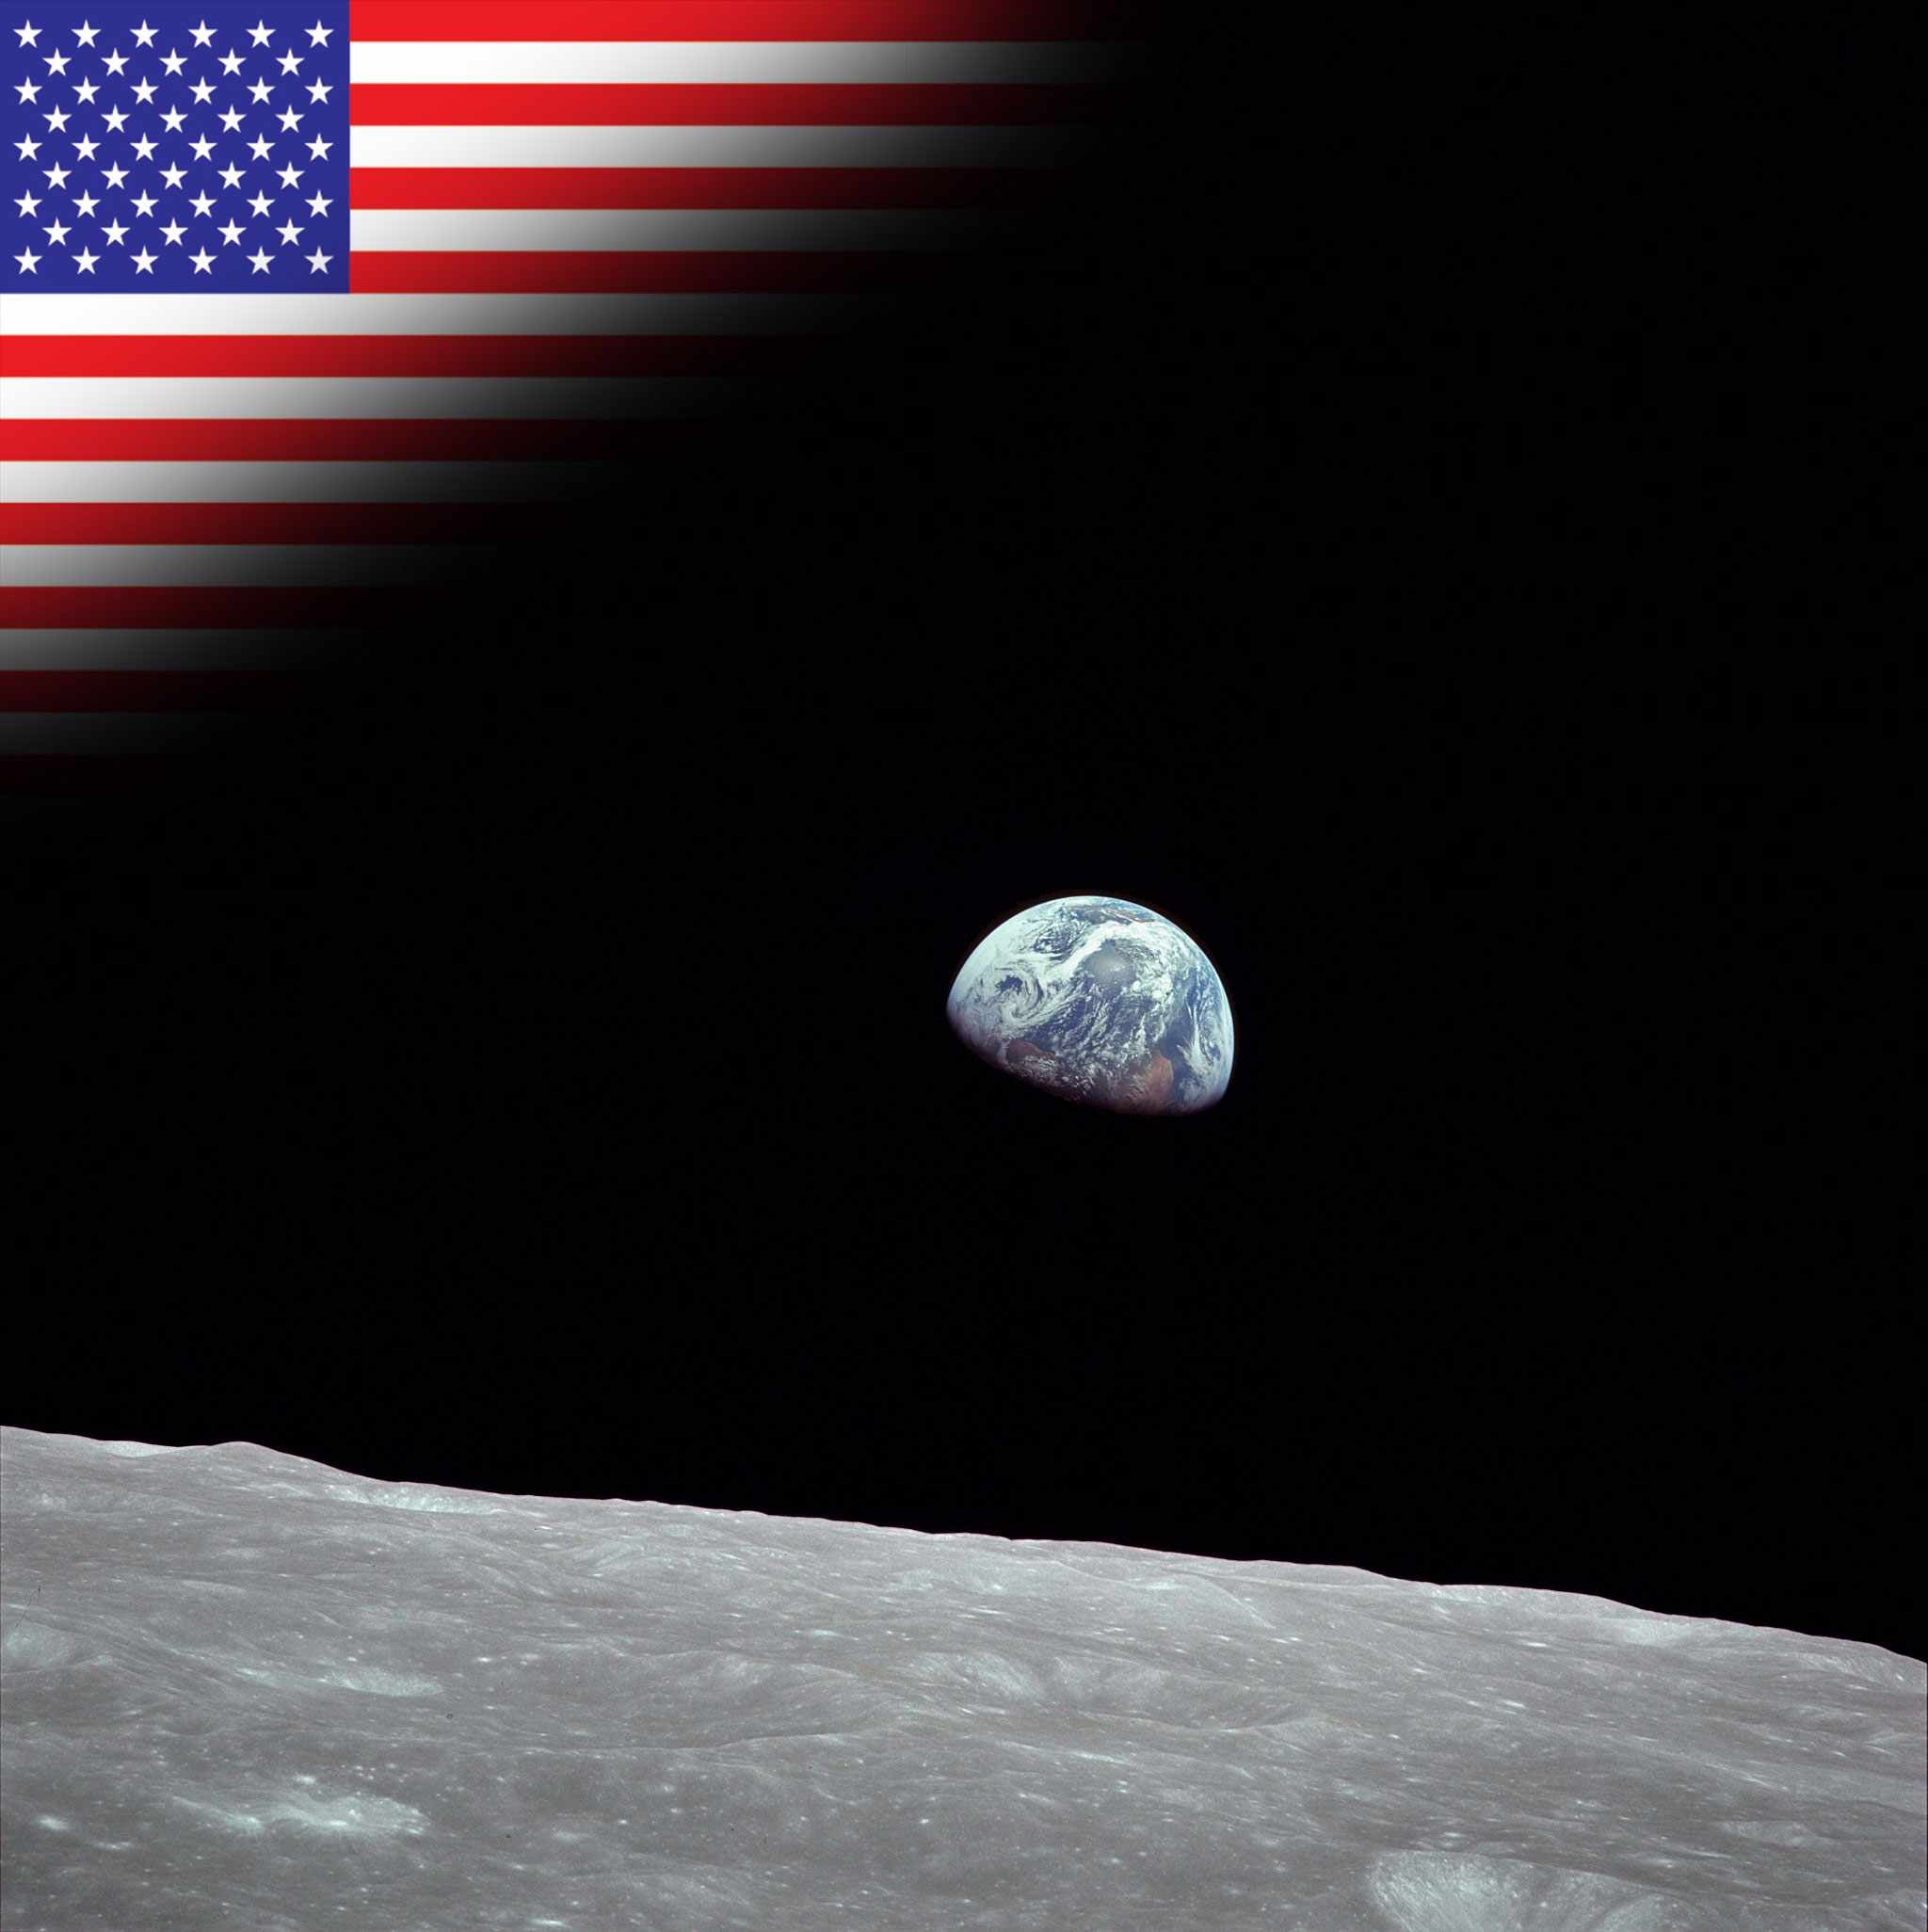 Apollo 8 sends humans around the Moon for the first time. (Earthrise, taken on 24 December 1968, by Apollo 8 astronaut William Anders)